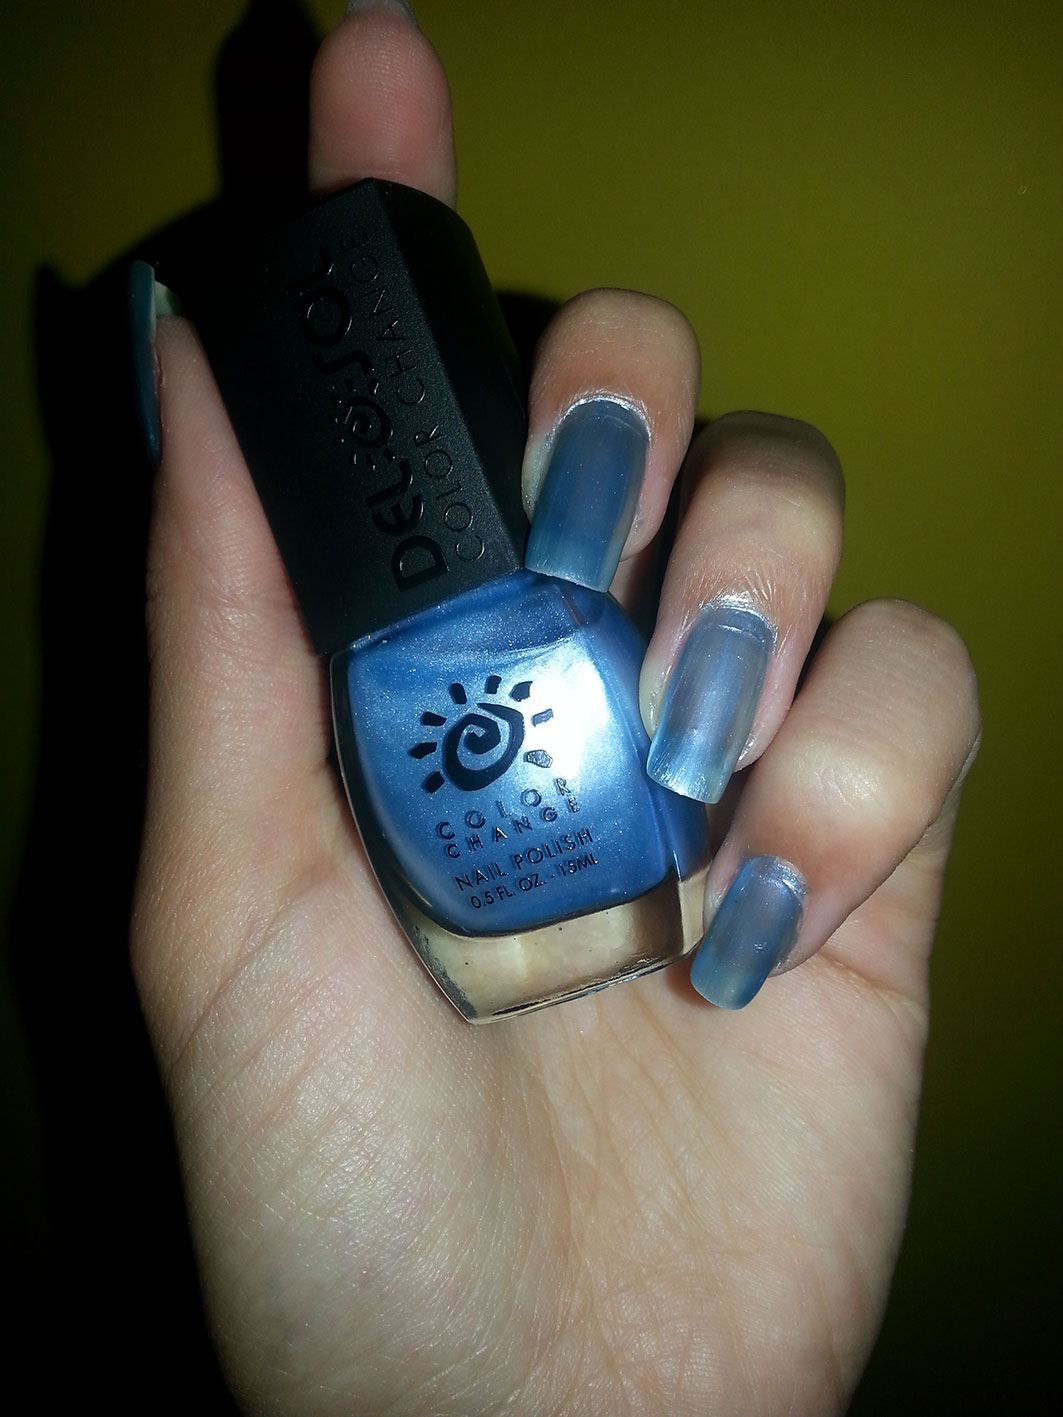 2014 09 26--recensione-delsol-review-smalto-nail-polish-cambia-sole